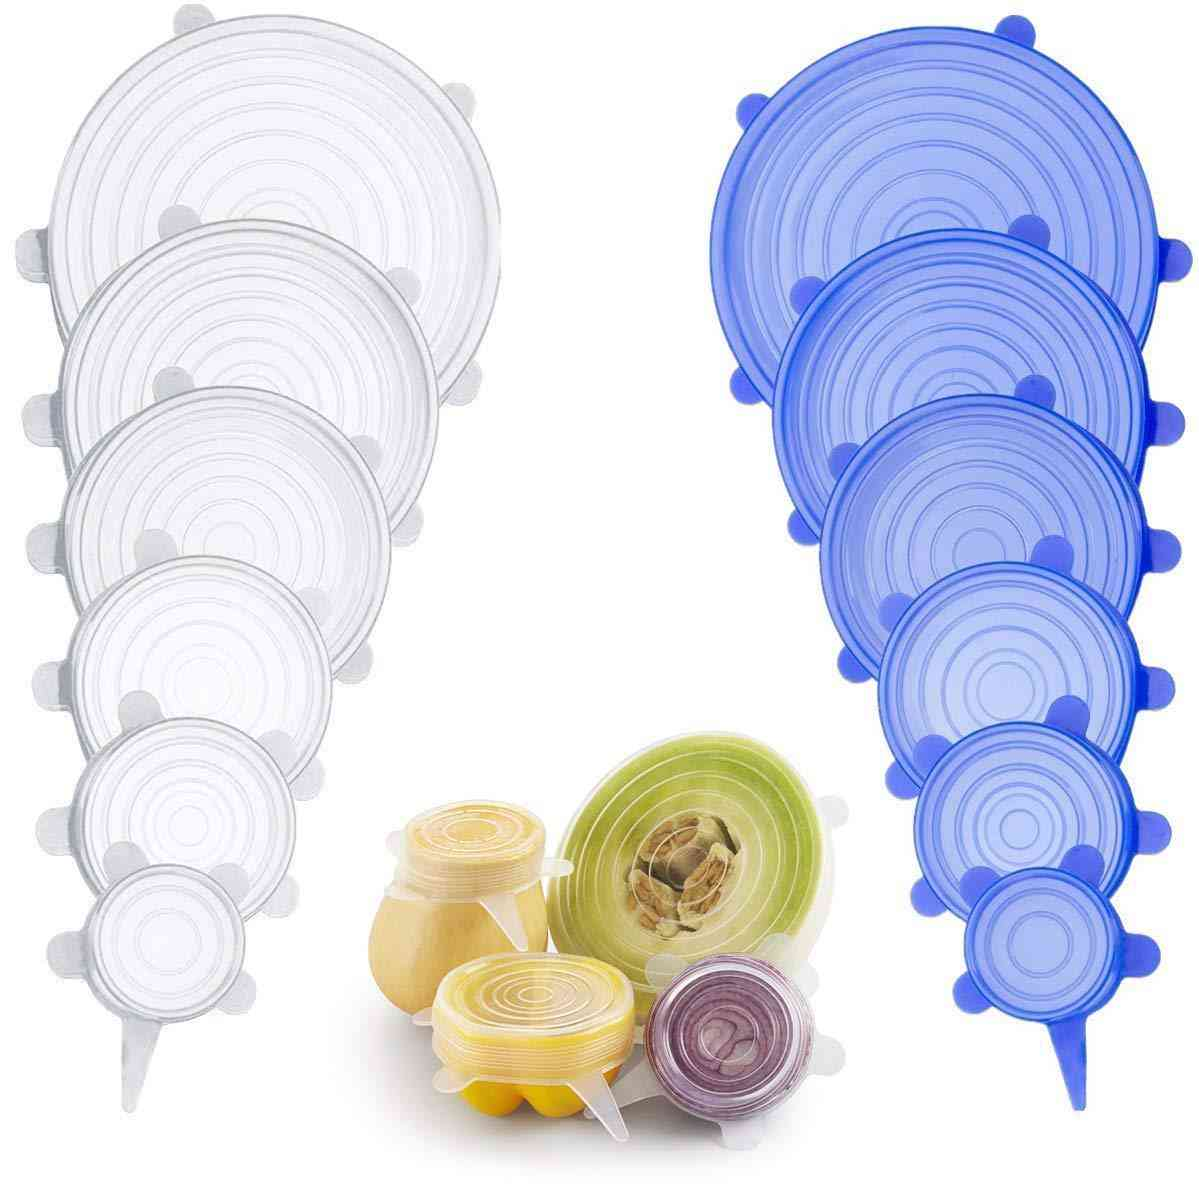 Silicone Stretch Lids Universal Silicone Food Wrap Bowl Pot Lid Silicone Cover Pan Cooking